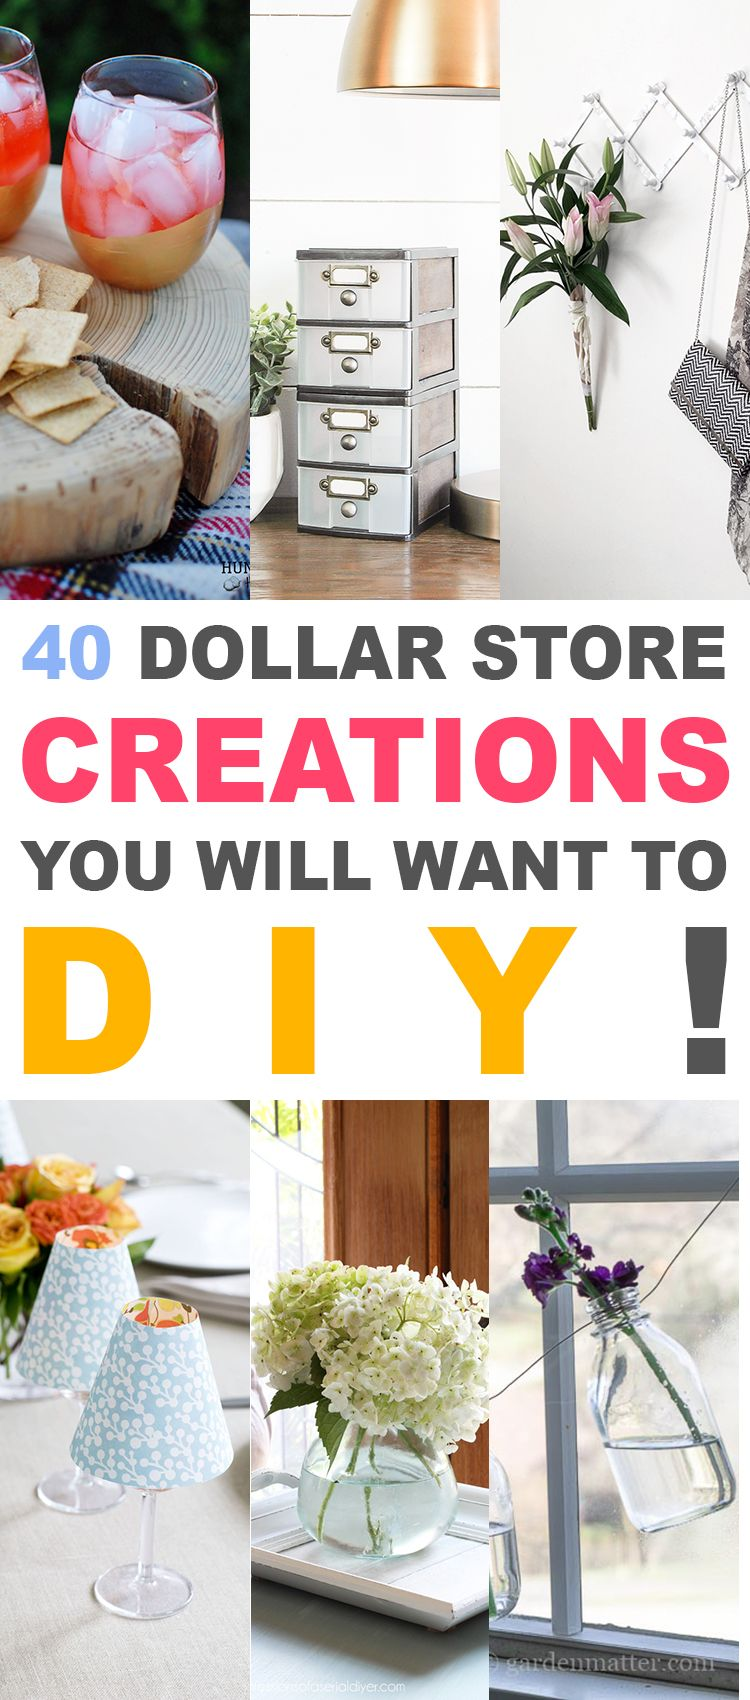 40 Dollar Store Creations You Will Want To Diy Dollar Tree Decor Dollar Store Christmas